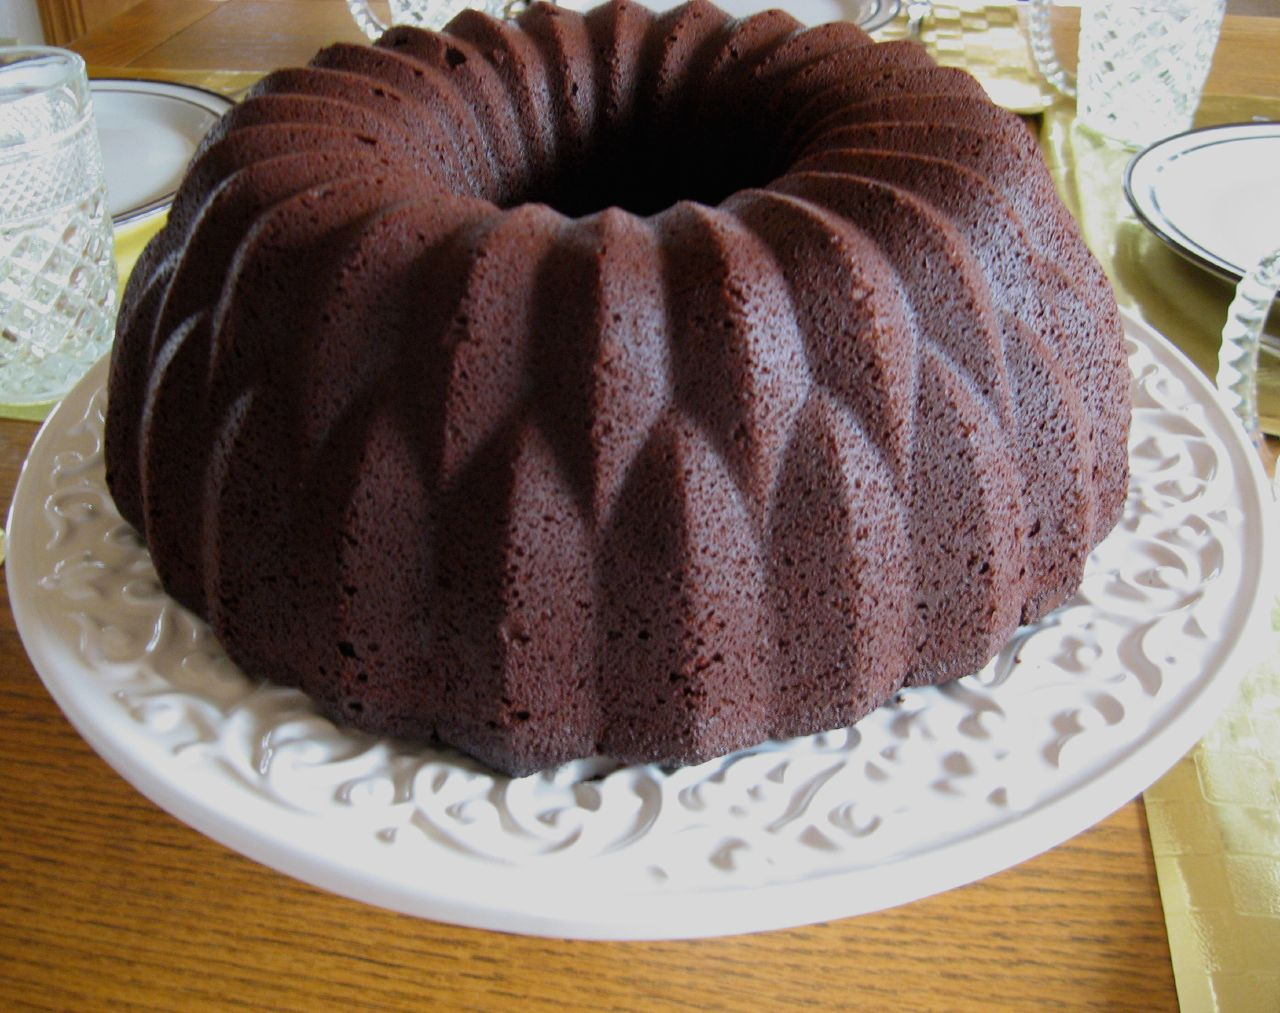 Ficheiro:Chocolate Sour Cream Bundt Cake, March 2008.jpg ...